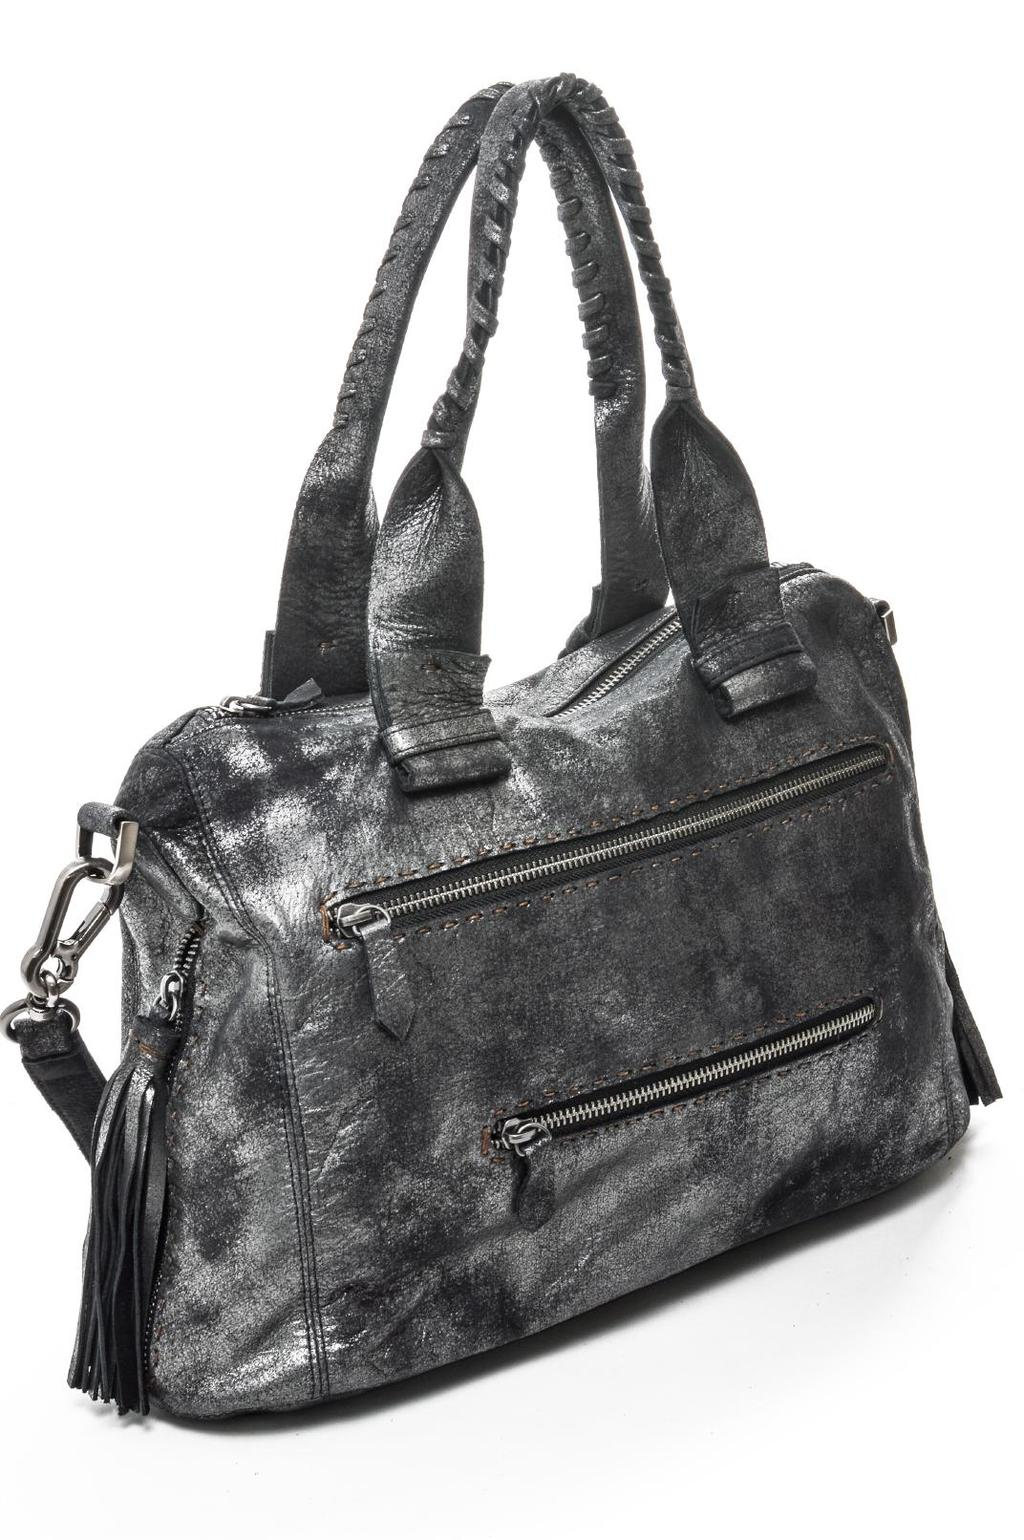 JOEL Whip-stitched Top Zip Shoulder Bag With Side Zippers